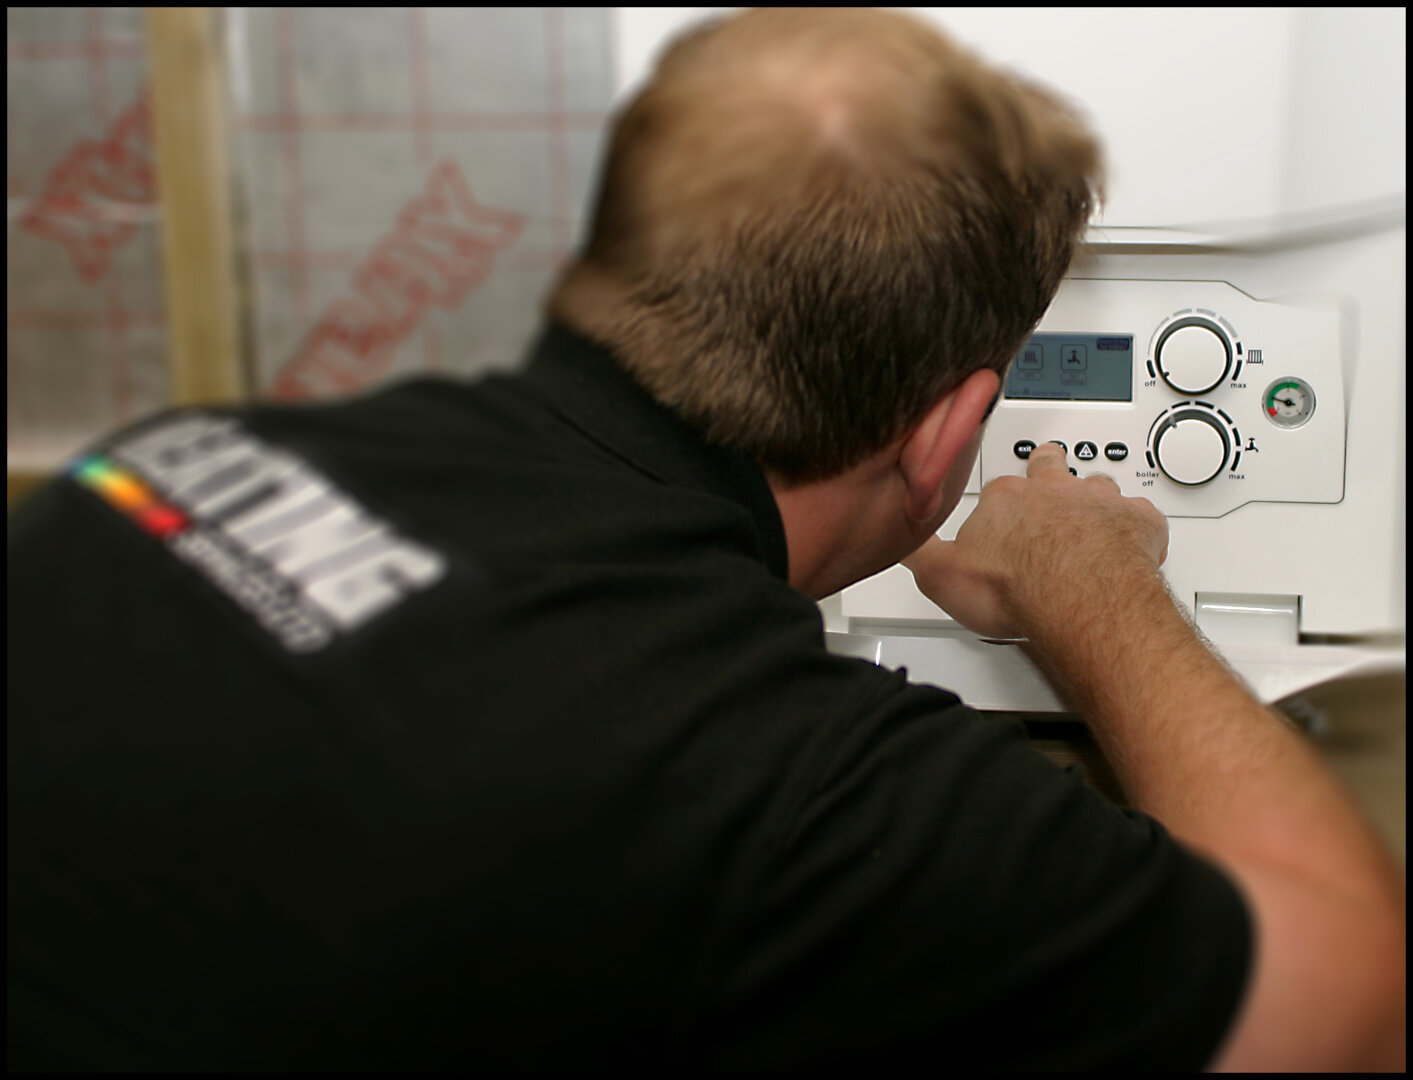 Plumbers Boiler Installation Service and Repairs and Bathroom Design and Installation by Heating Services Ltd in Redhill (5)